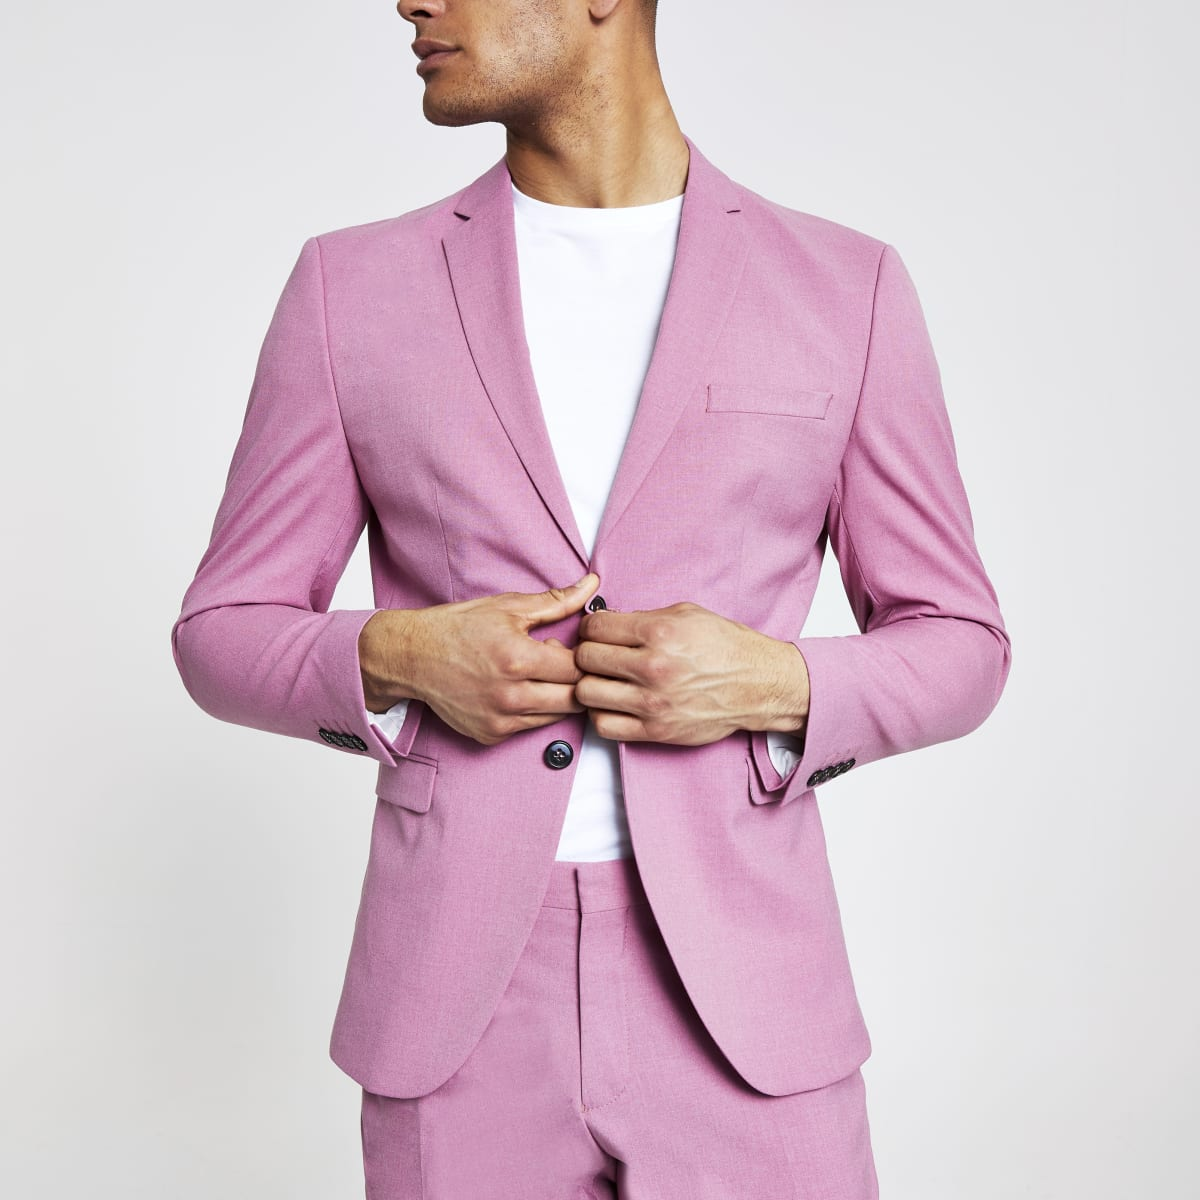 Selected Homme pink slim fit suit jacket